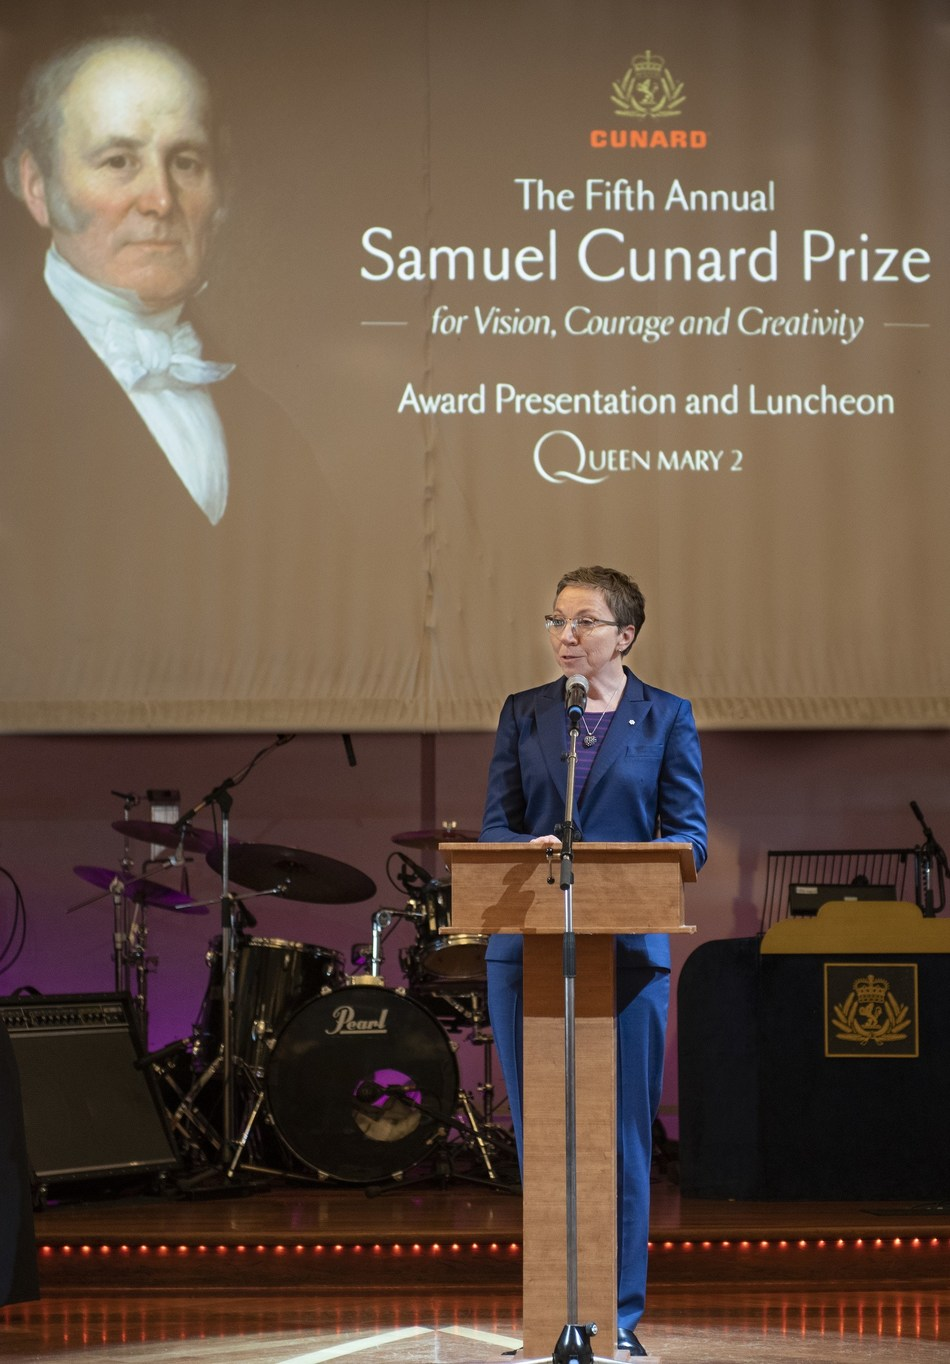 Founder and CEO of Shorefast Foundation & Fogo Island Inn, Zita Cobb, accepts the Samuel Cunard Prize for Vision, Courage and Creativity onboard Queen Mary 2 in Halifax, Nova Scoita on Friday, July 26, 2019. (Photo Credit: Steve Farmer for Cunard)